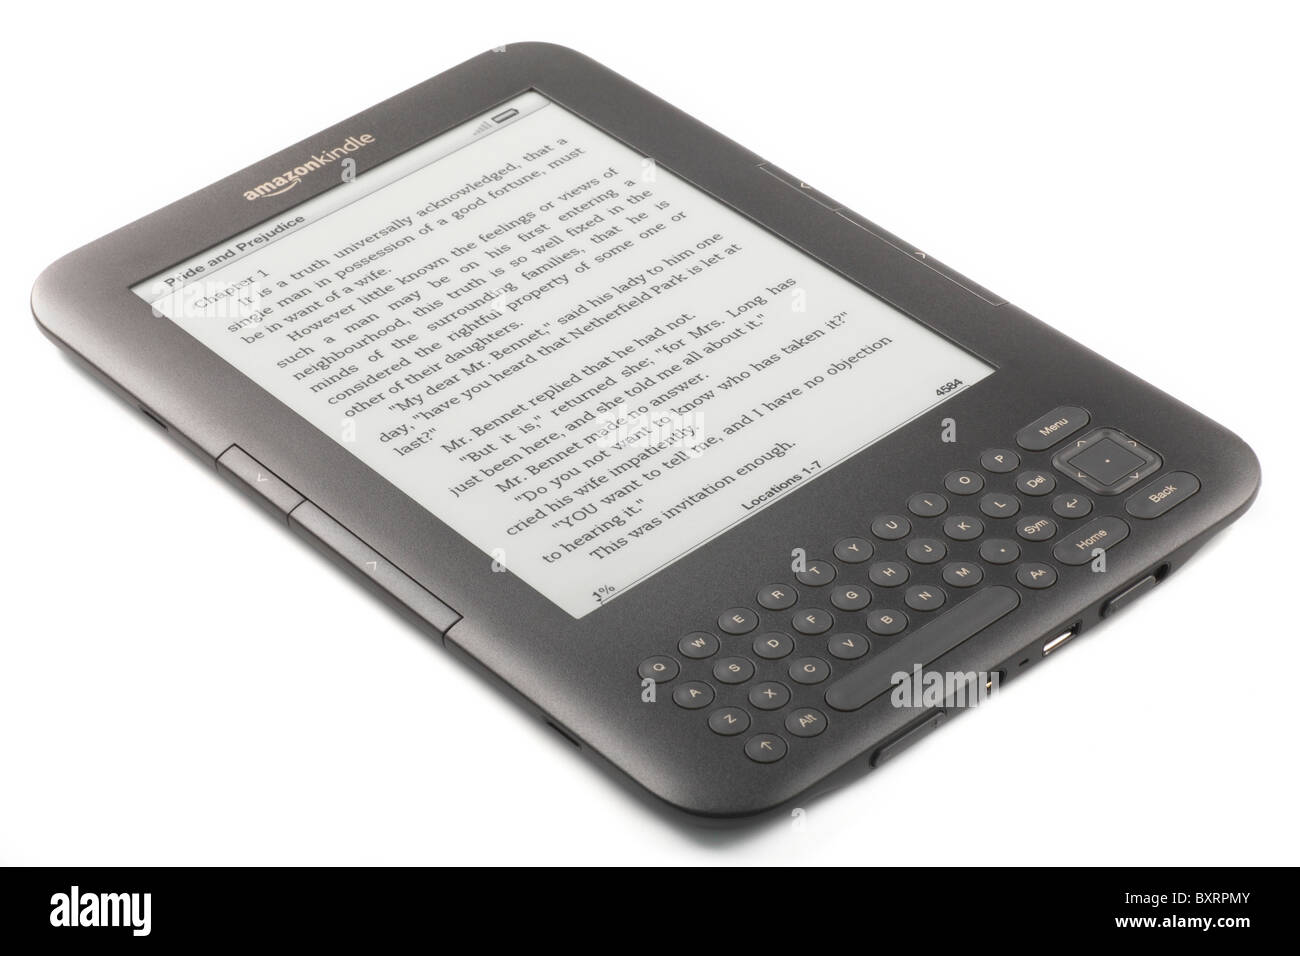 Amazon Kindle 3 Ebook 2010/2011 showing pages of Pride and Prejudice - Editorial Use Only - Stock Image